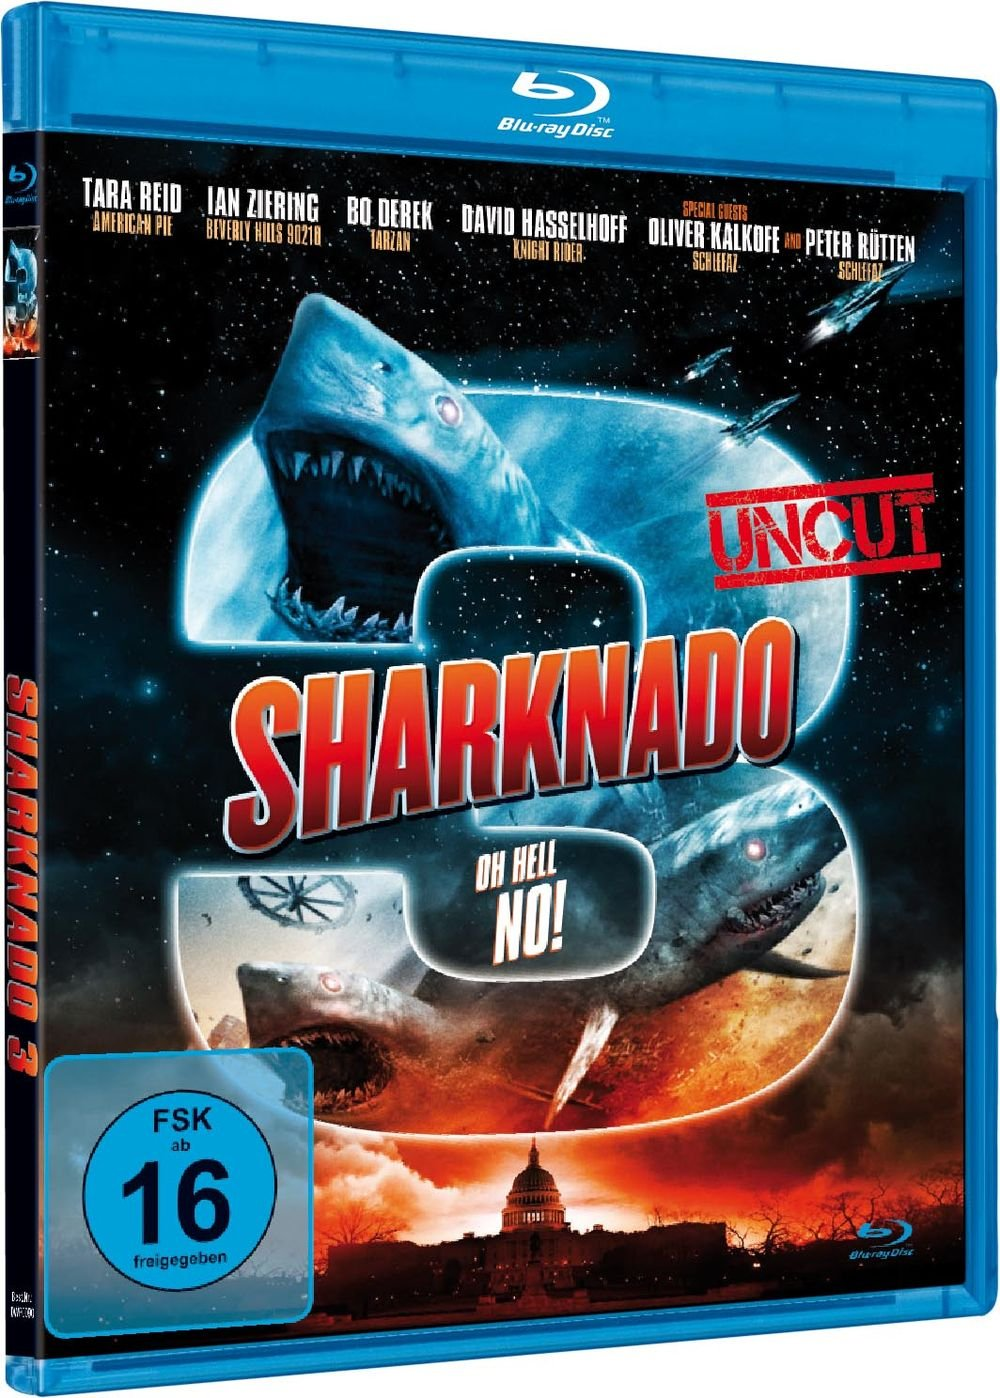 Sharknado 3 - Oh Hell No! [Francia] [Blu-ray]: Amazon.es: David ...